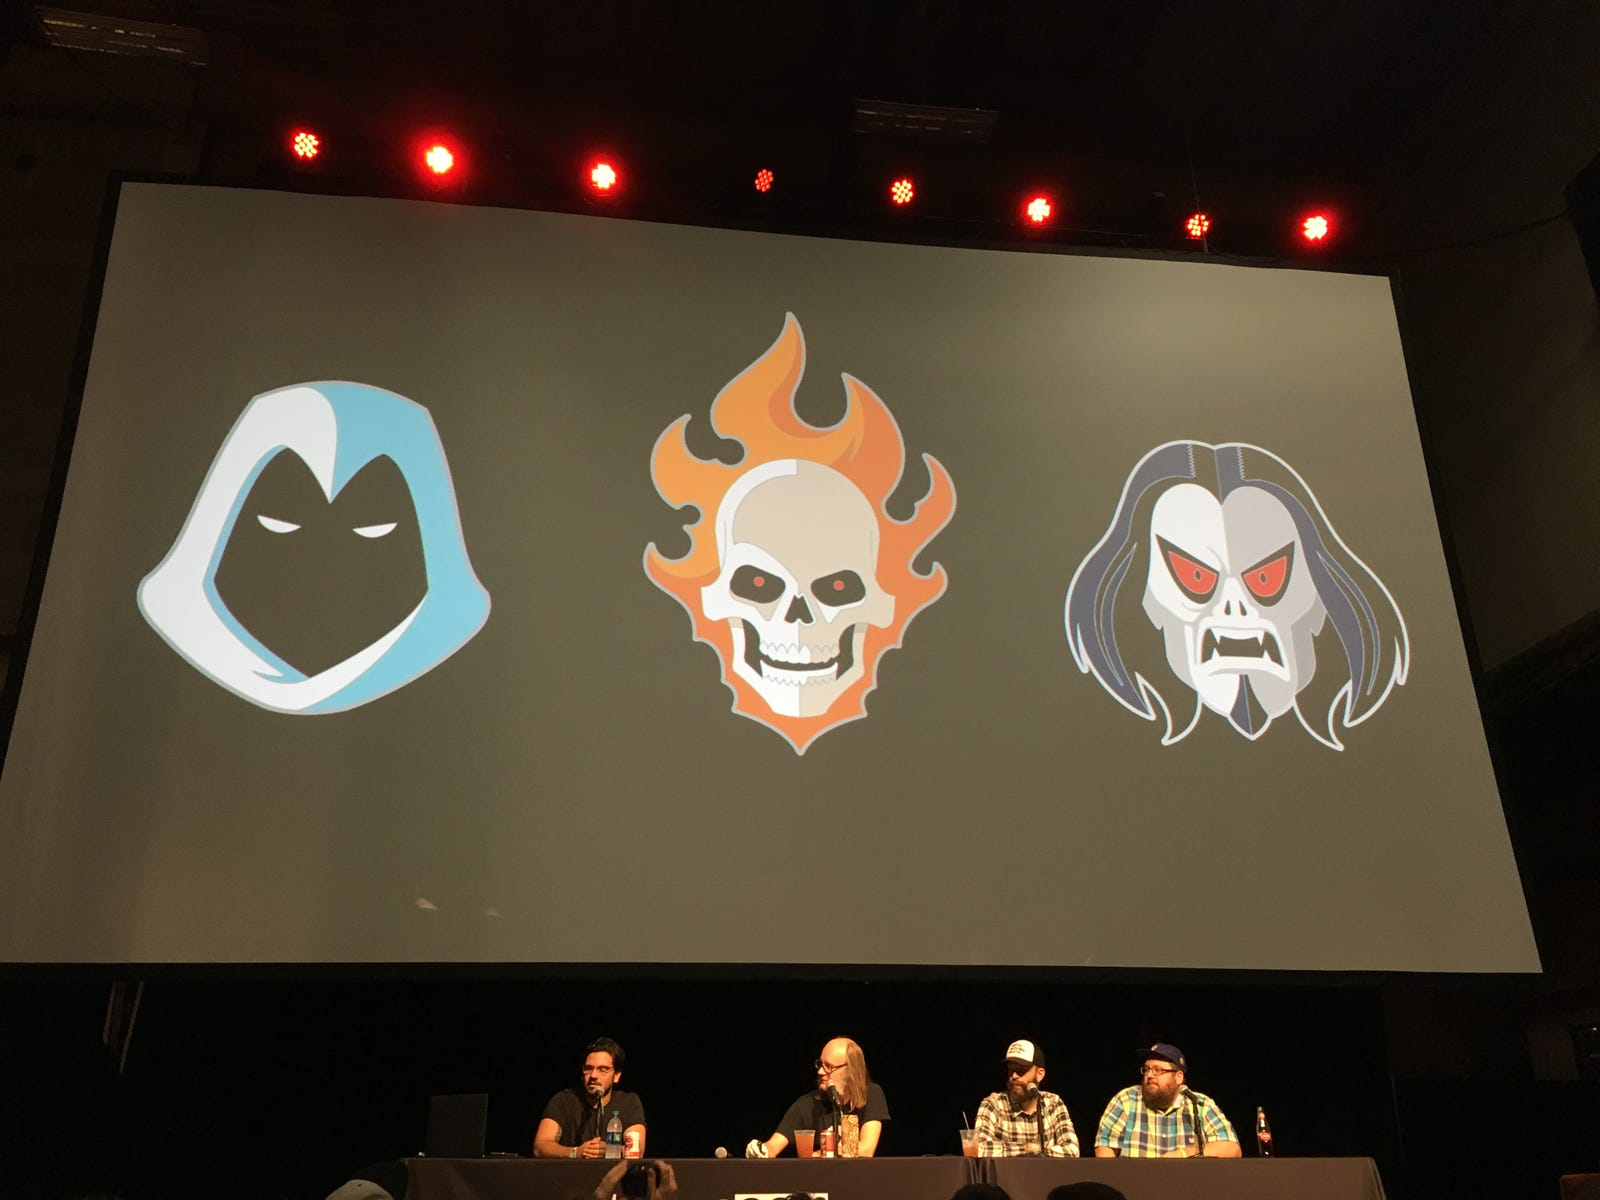 The Moon Night and Ghost Rider pins by Tom Whalen were released, but they canceled this Morbius because they didn't think it worked.